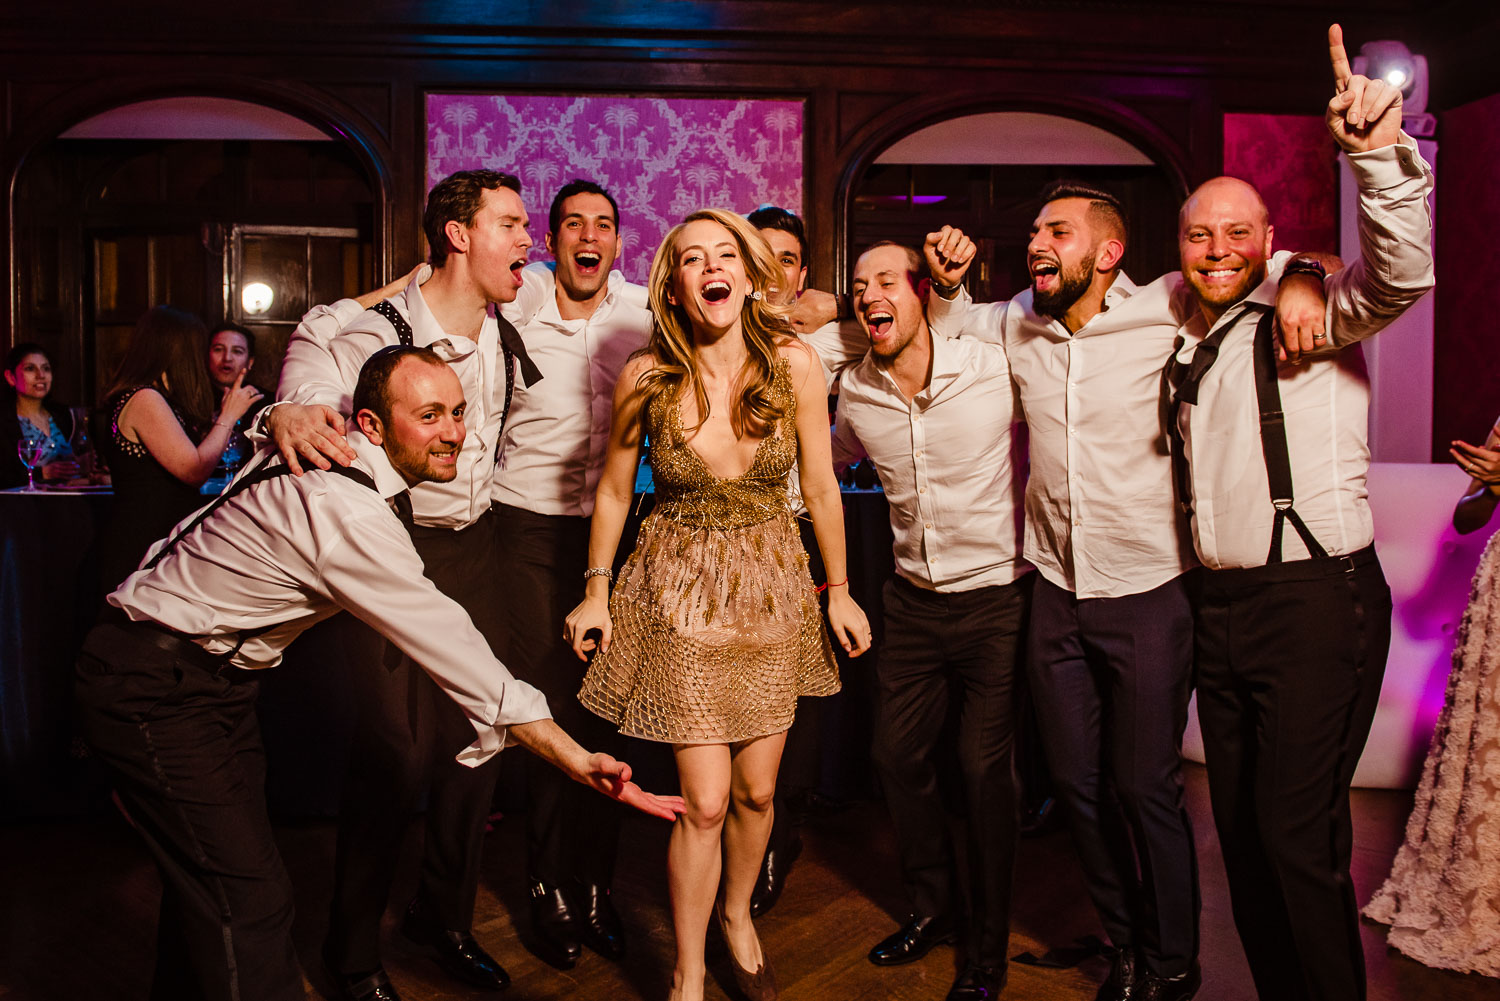 Bride and groomsmen on the dance floor